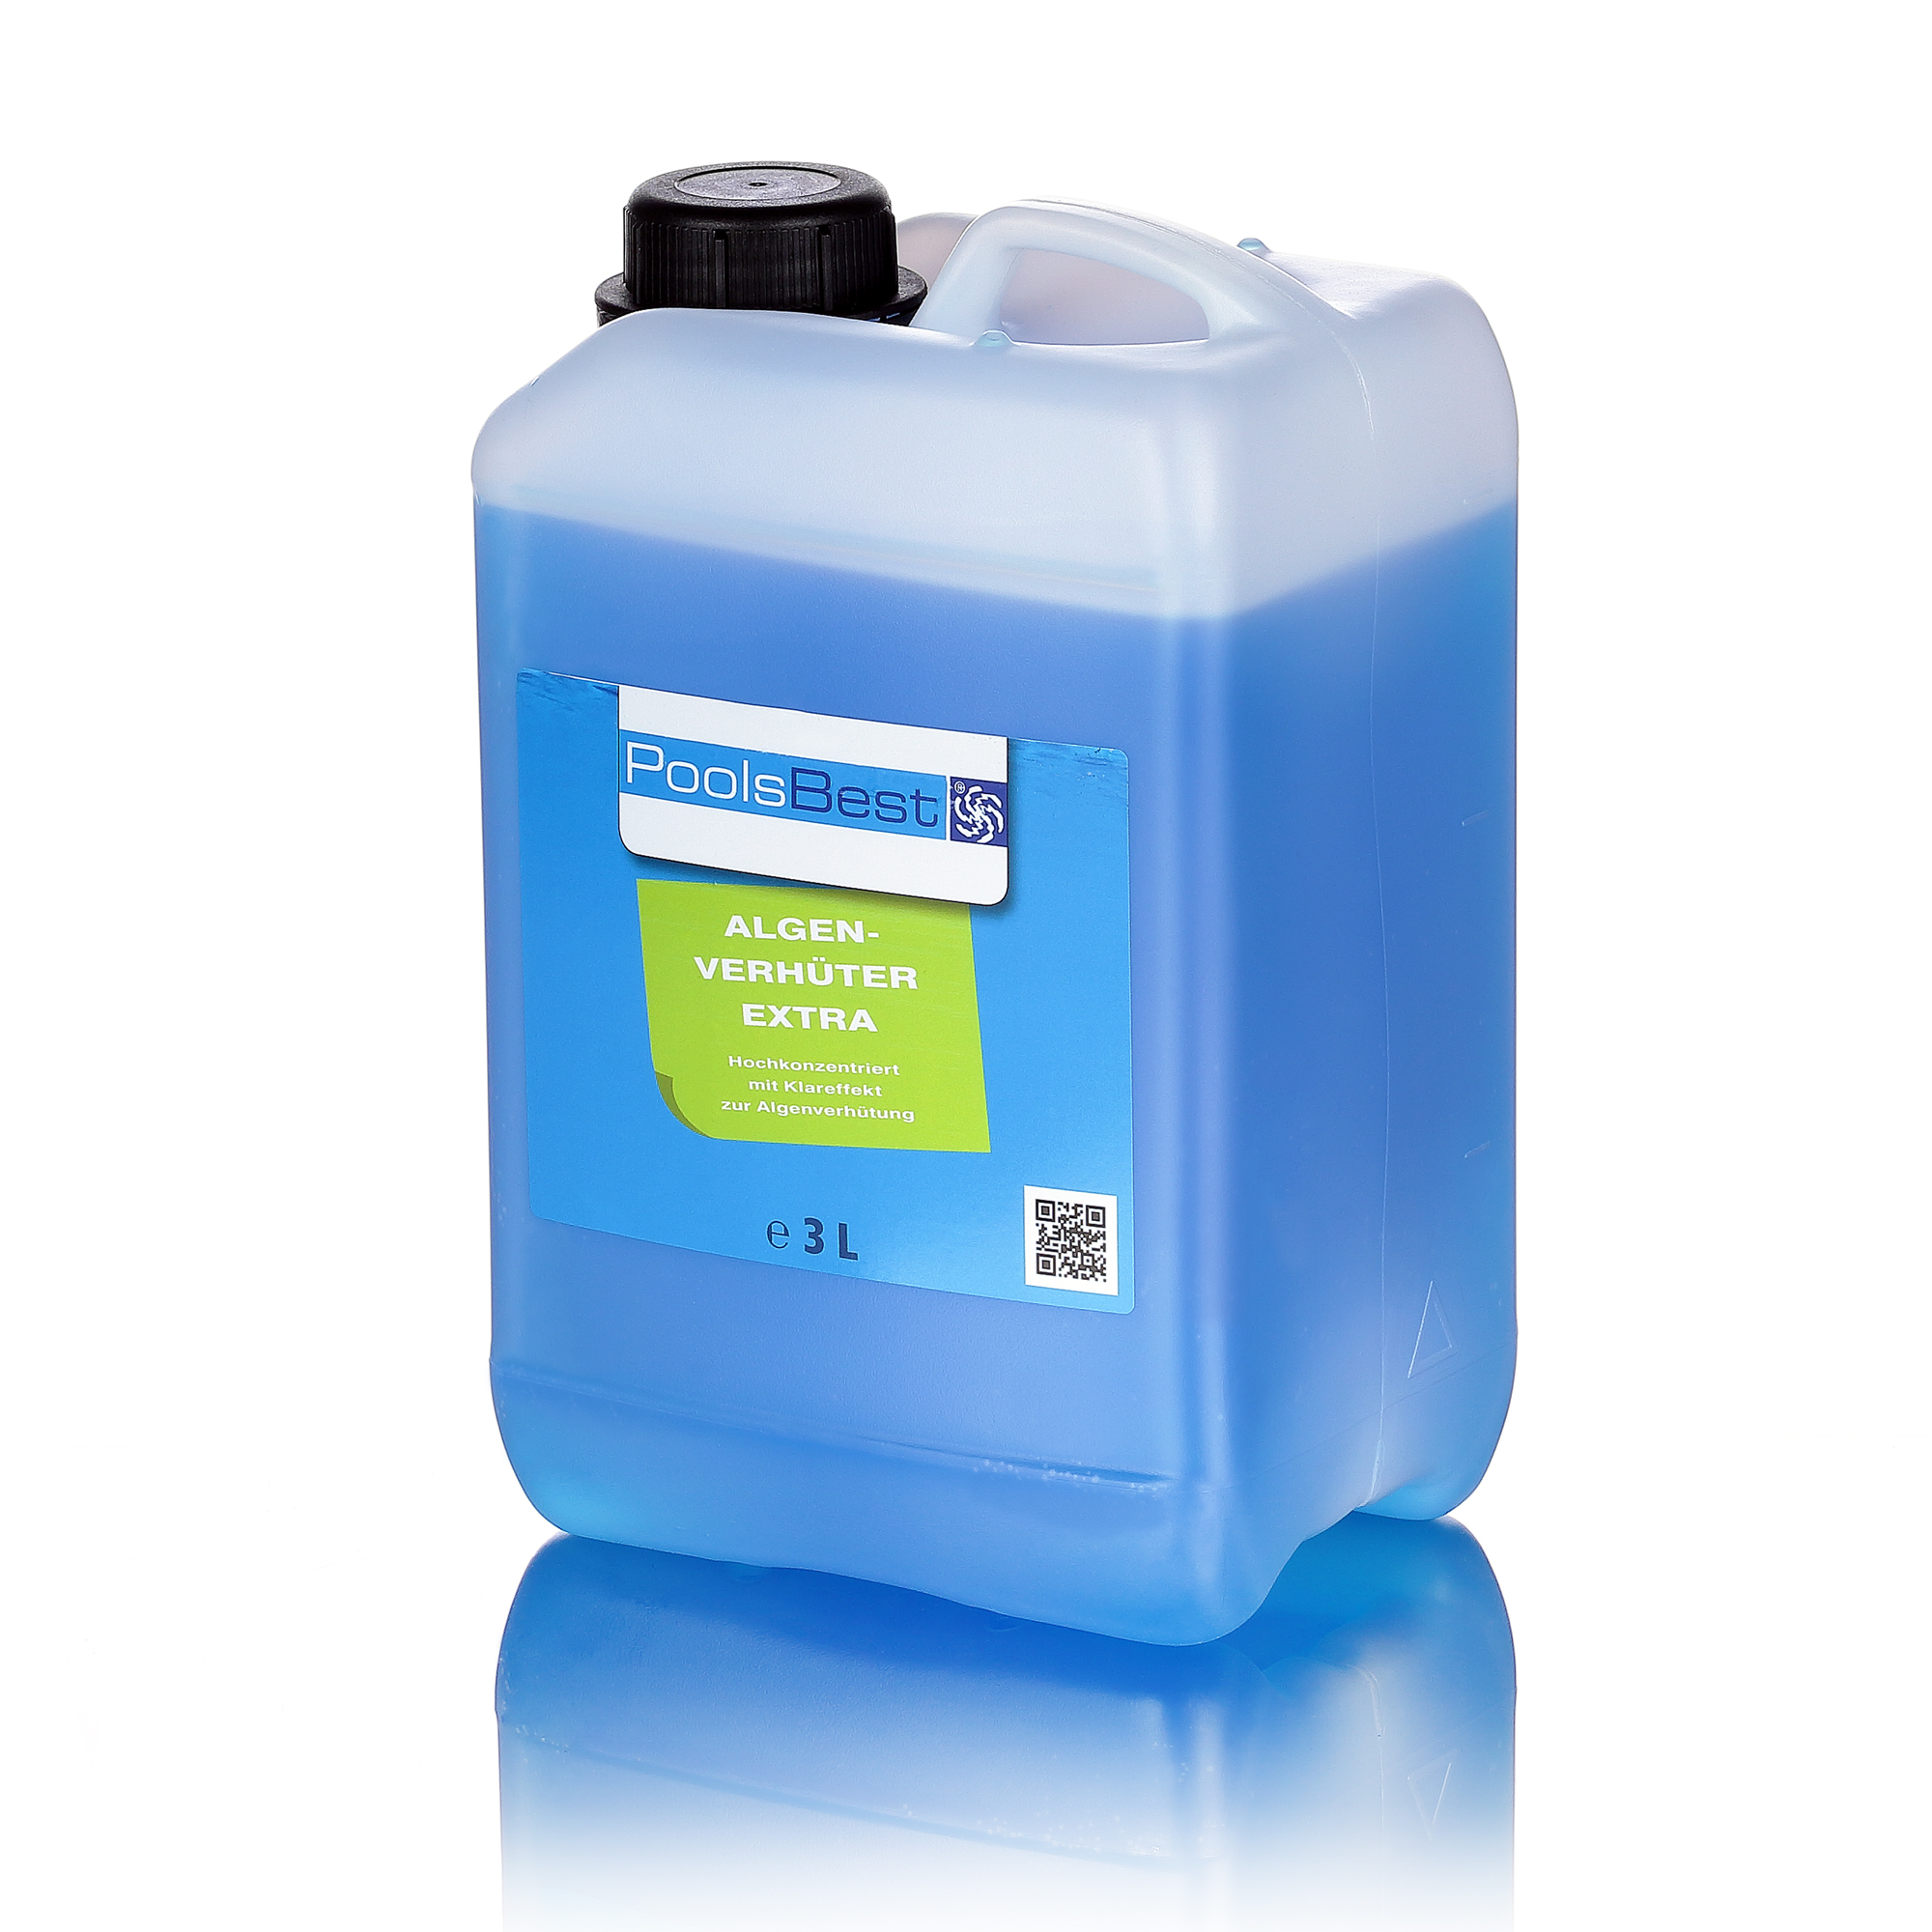 Pool Chlortabletten Im Skimmer Www Pool Chlor Shop De 10 Kg Poolsbest Ph Heber Granulat